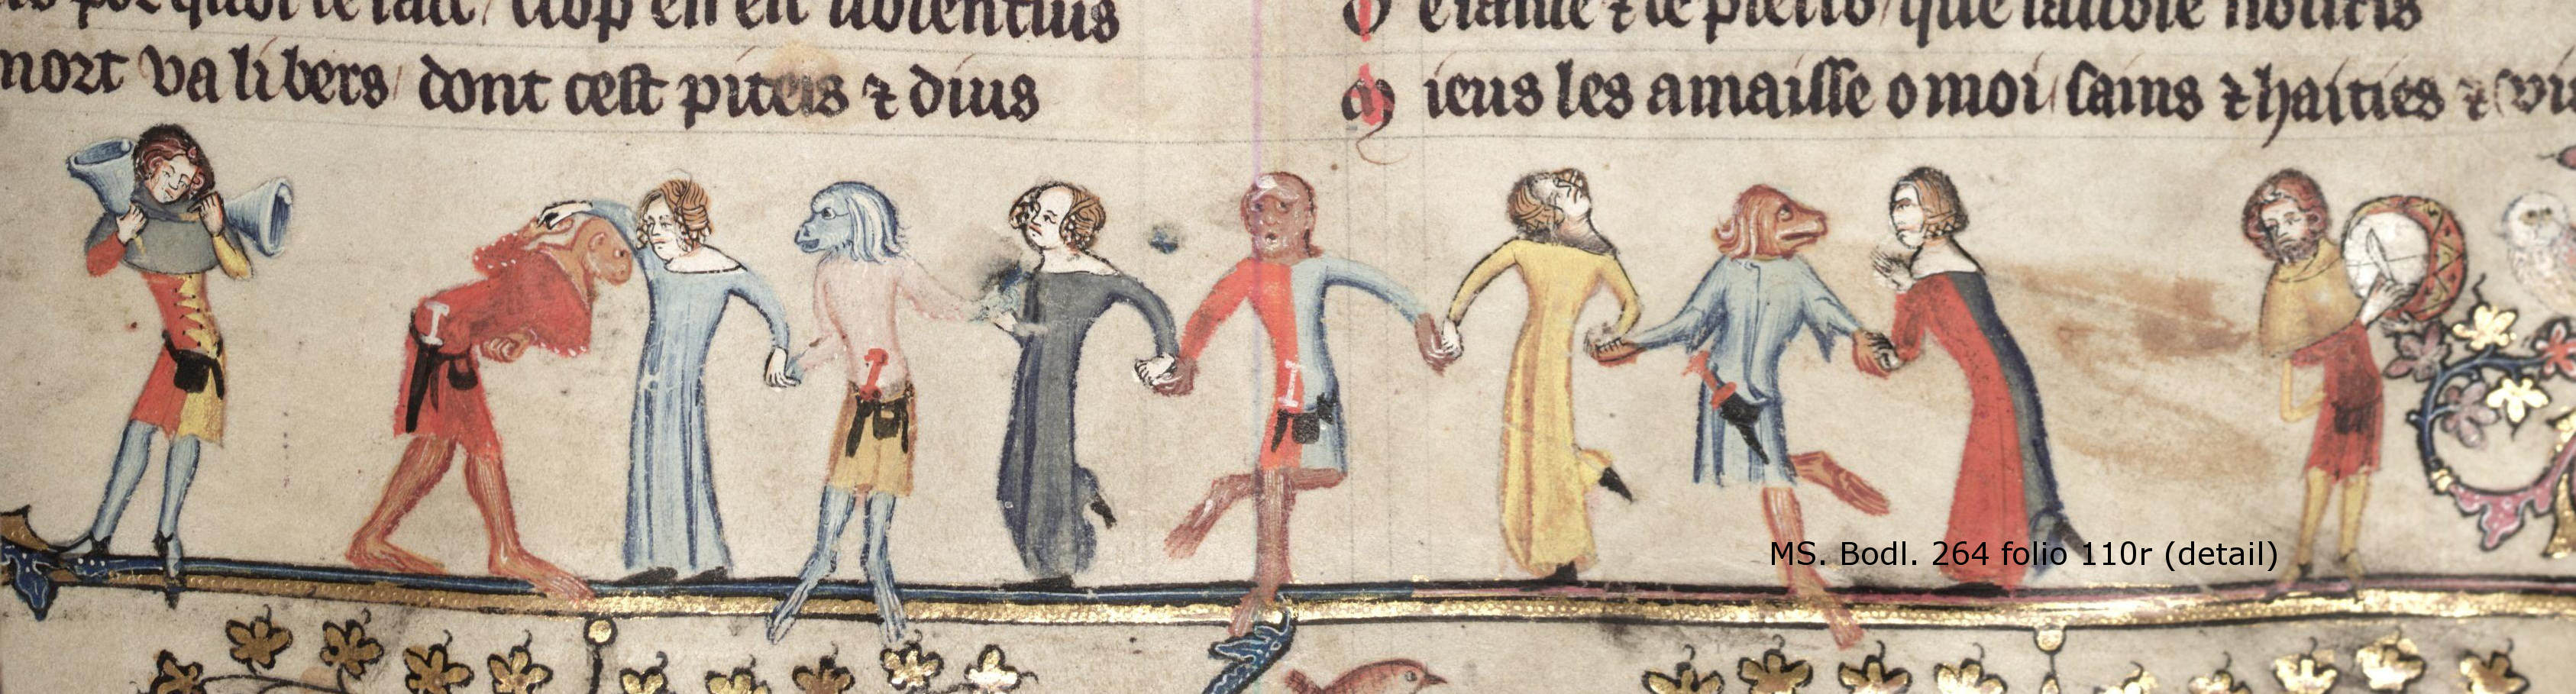 dancing courtiers in animal masks